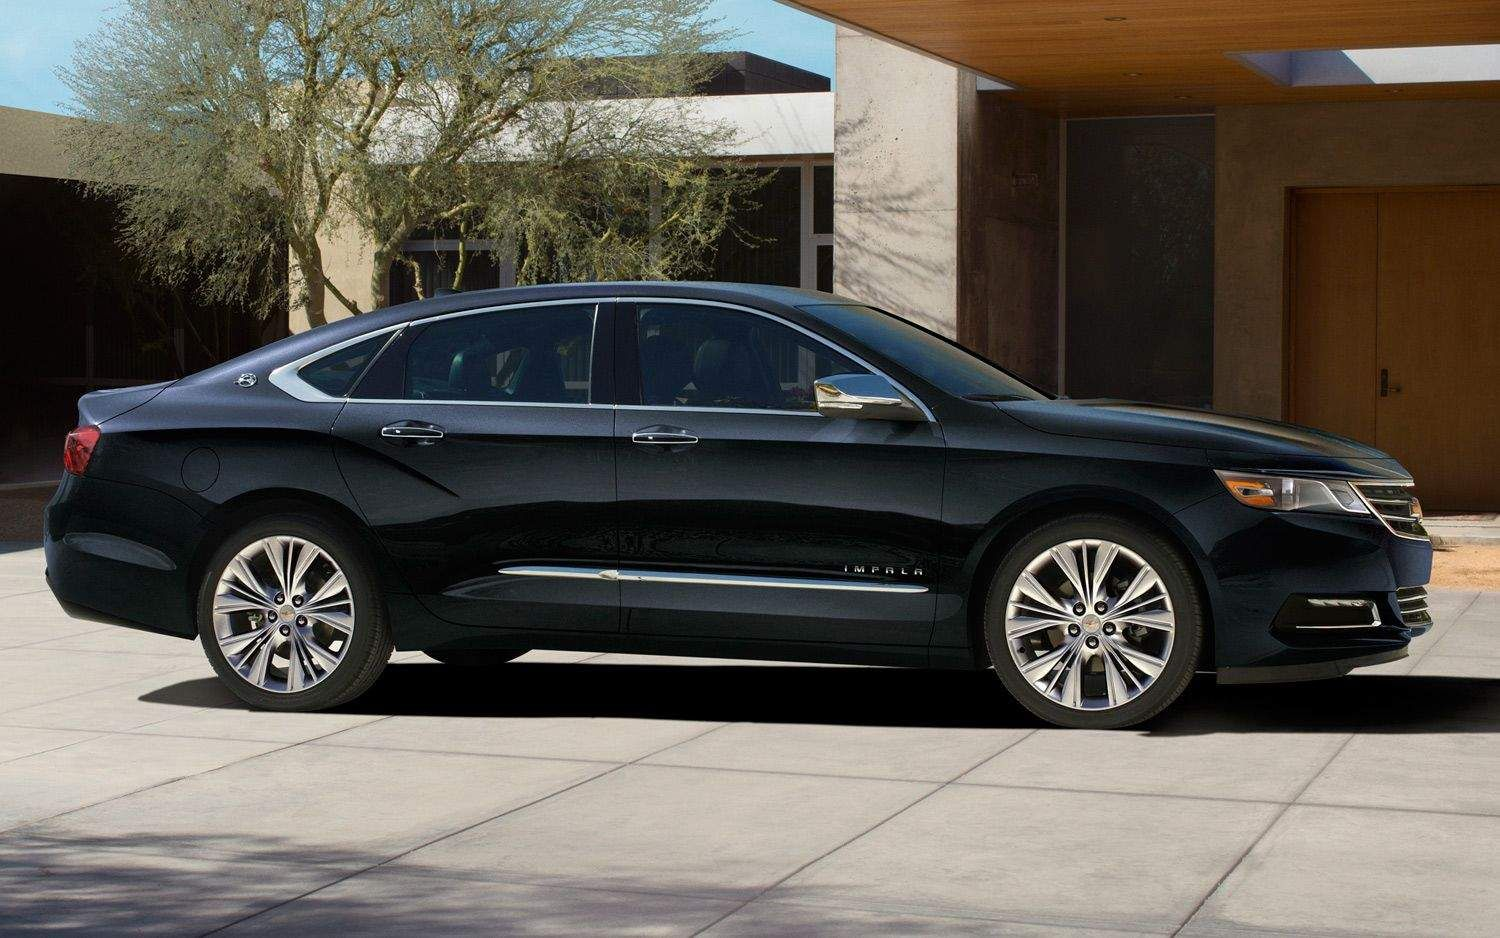 2014 chevrolet impala features brand first safety features wot on motor trend